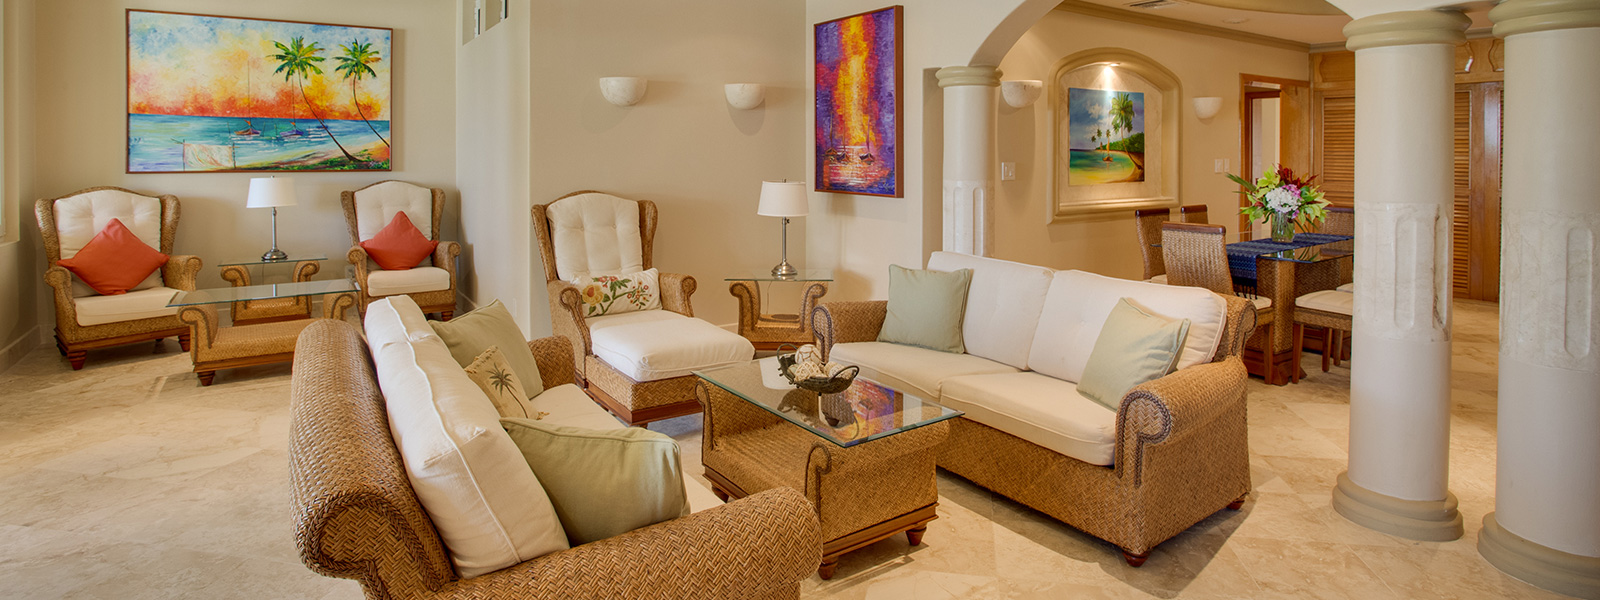 Living Room Rentals Extraordinary Villa Del Paraiso  Belize Luxury Beachfront Vacation Rental Design Inspiration